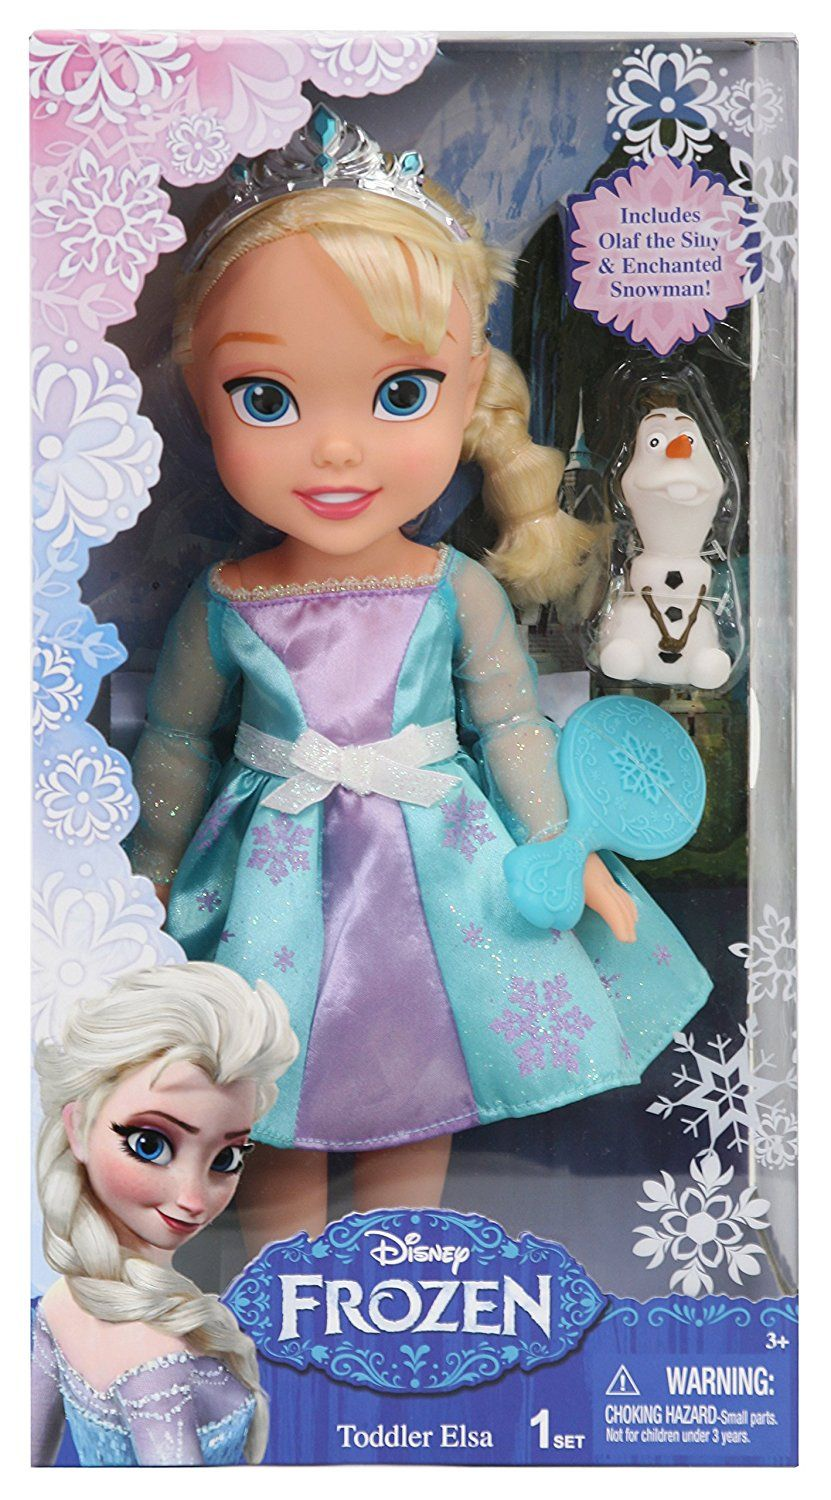 Disney Frozen Elsa Toddler Doll Amazon.co.uk Toys